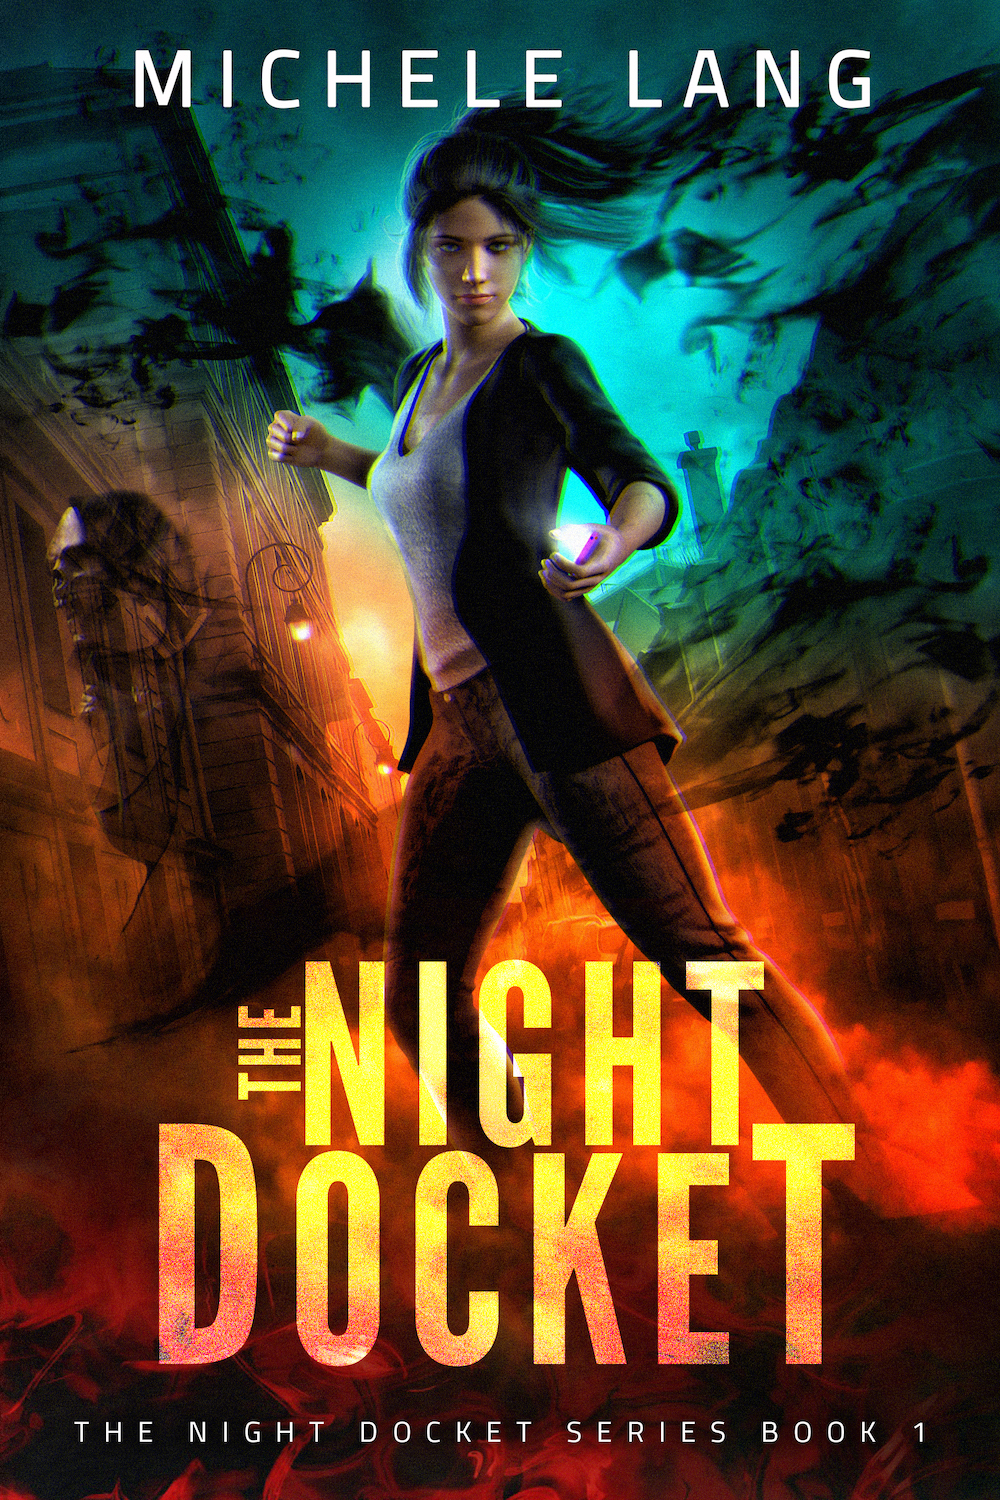 The Night Docket, by Michele Lang